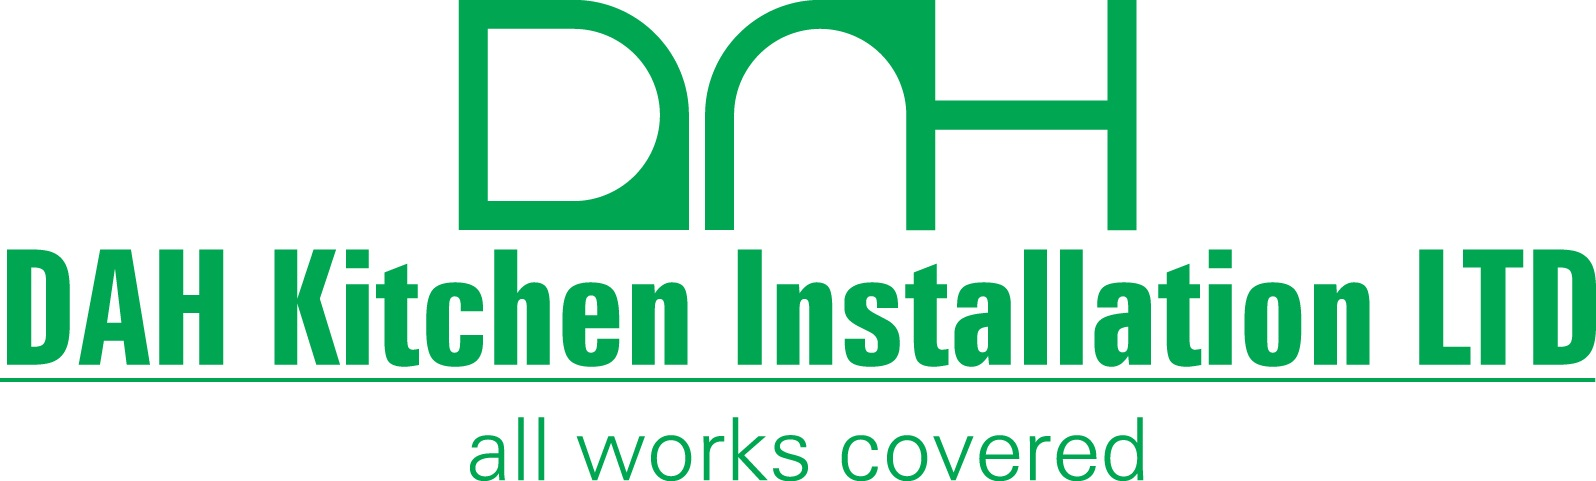 DAH Kitchen Installations Ltd